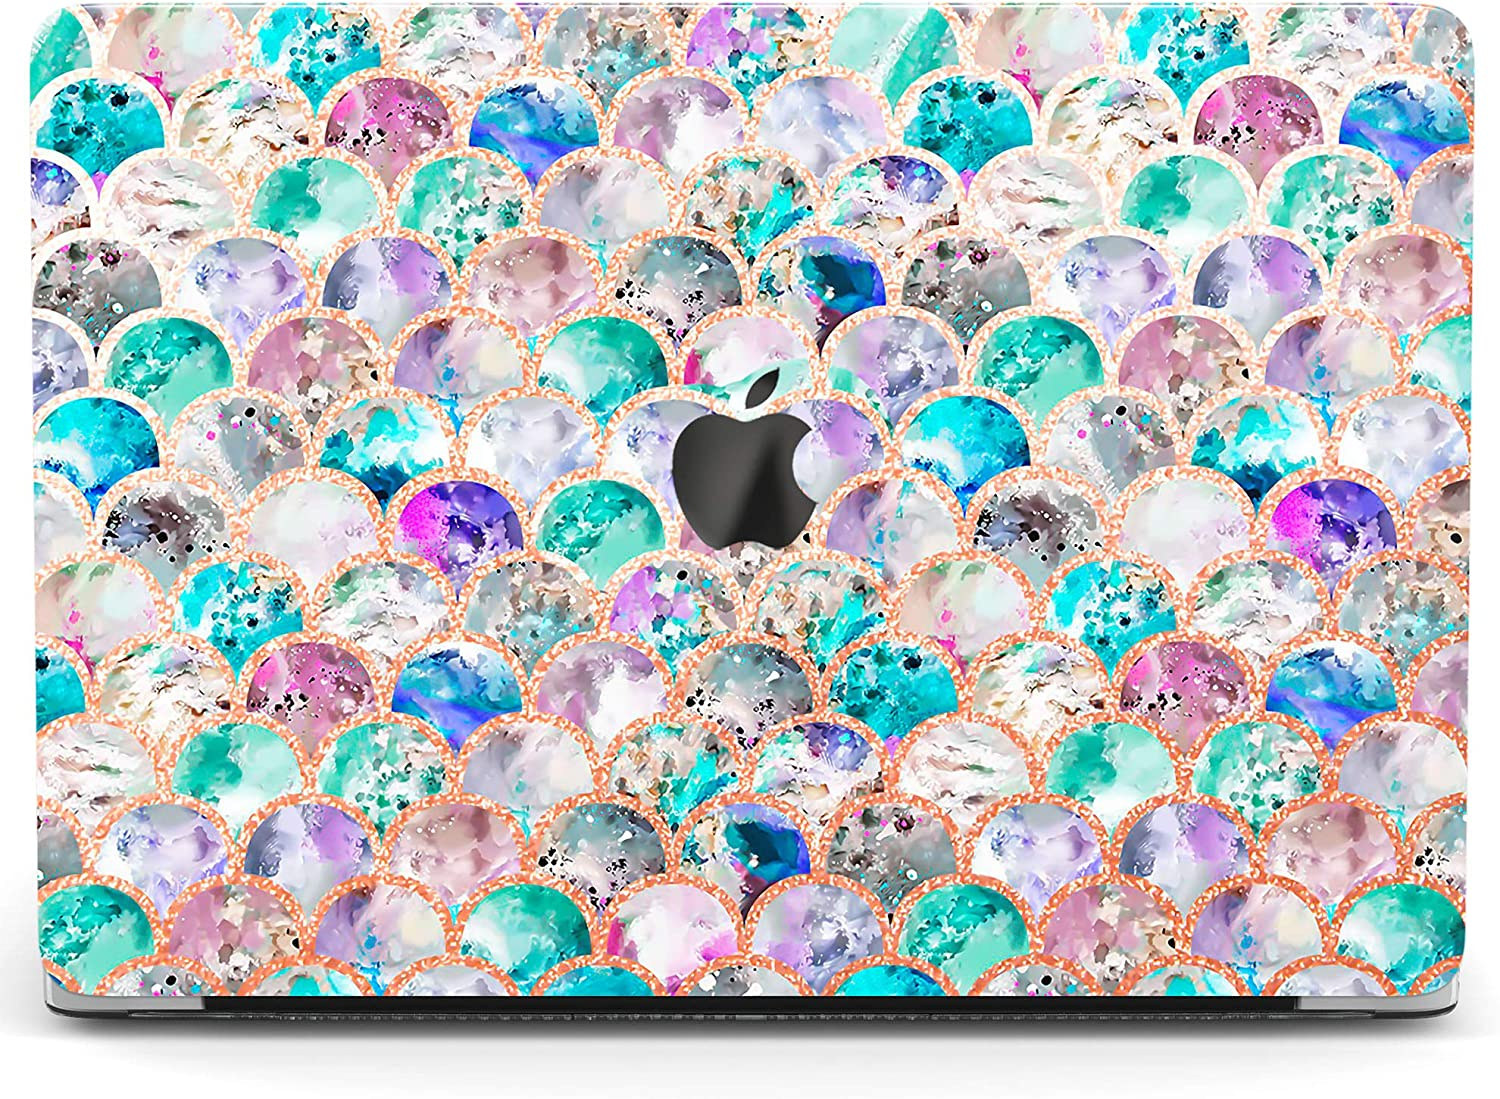 Wonder Wild Case for MacBook Air 13 inch Pro 15 2019 2018 Retina 12 11 Apple Hard Mac Protective Cover Touch Bar 2017 2016 2020 Plastic Laptop Print Marble Pattern Cute Abstract Waves Multicolored